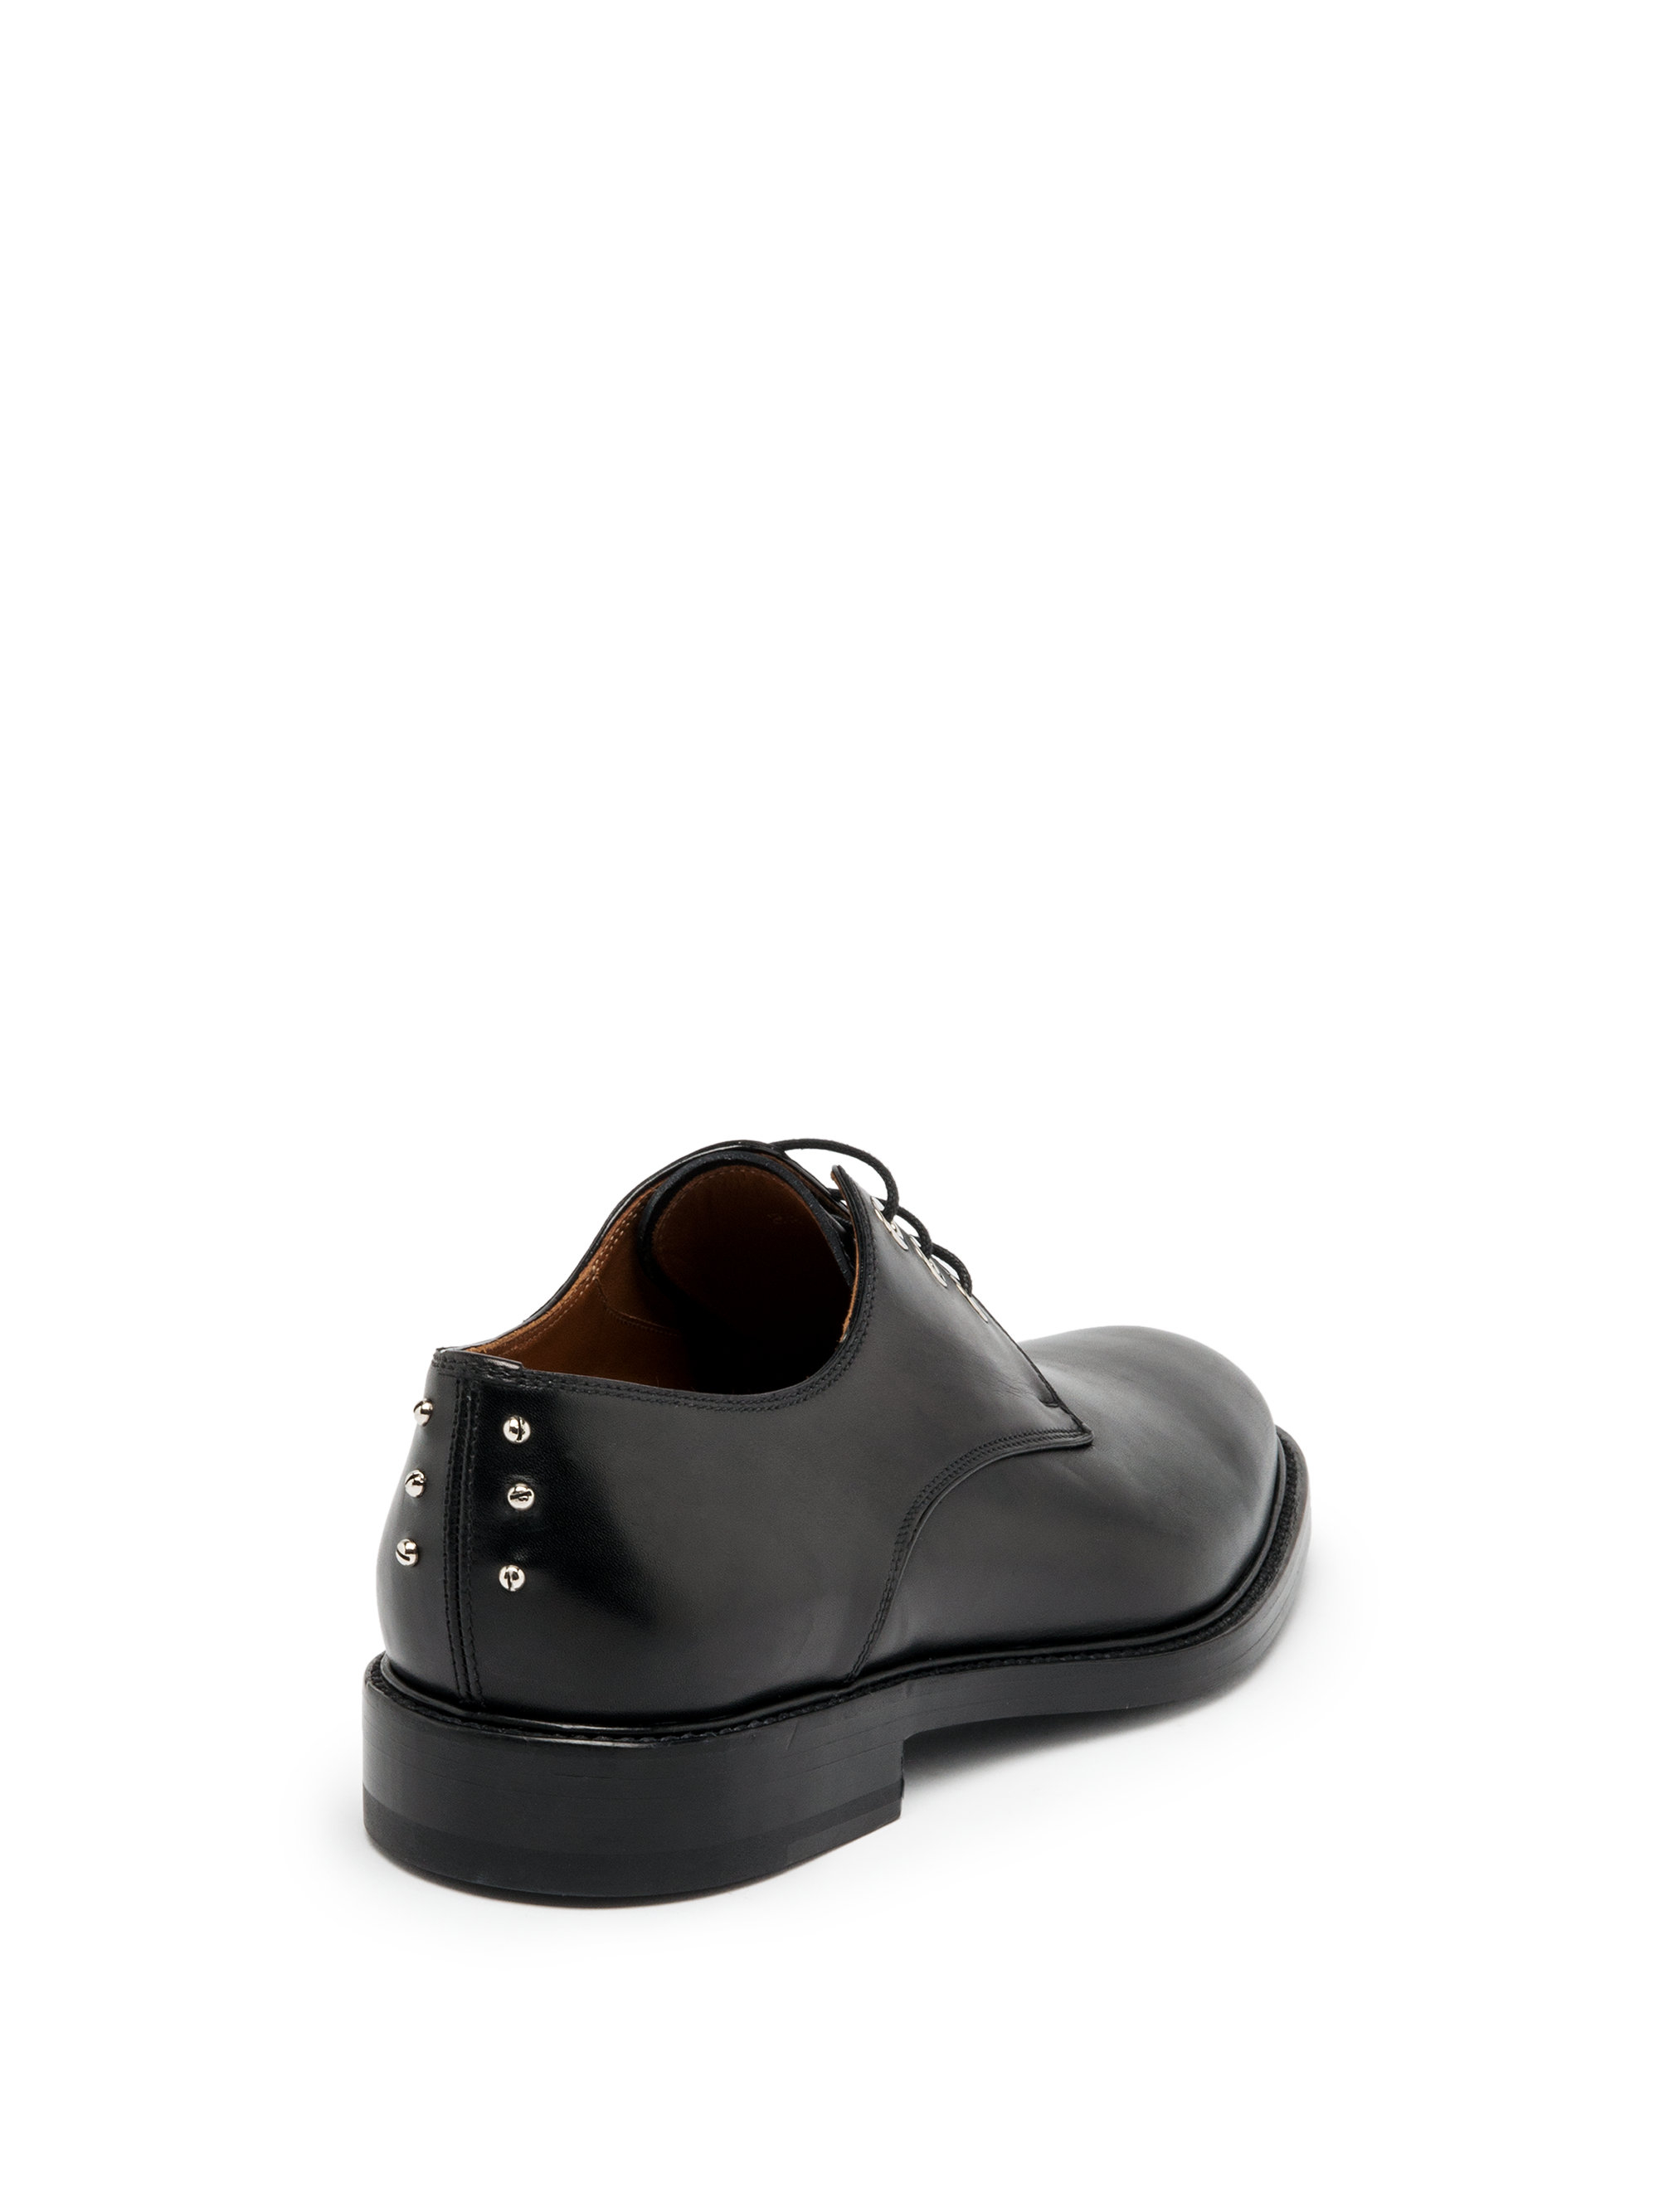 Givenchy classic Derby shoes outlet with paypal order discount authentic online i4ESDUV6jE